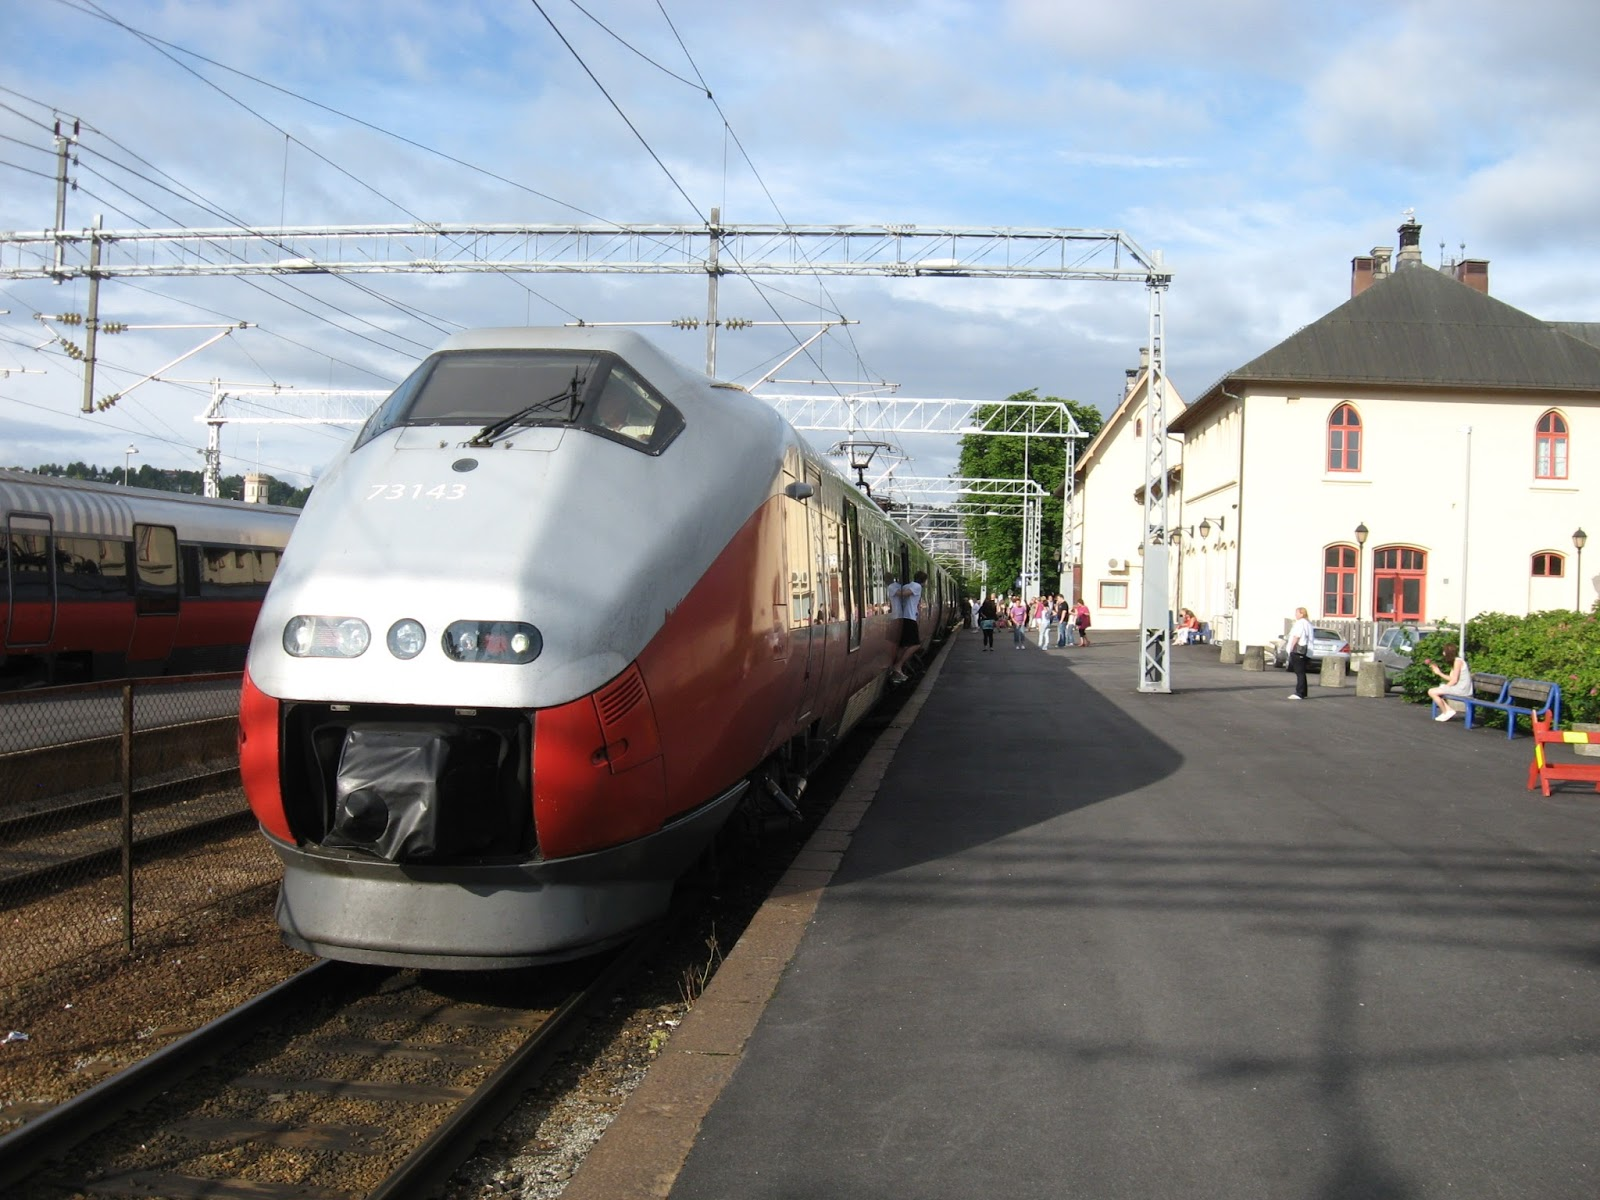 copenhagen to oslo train